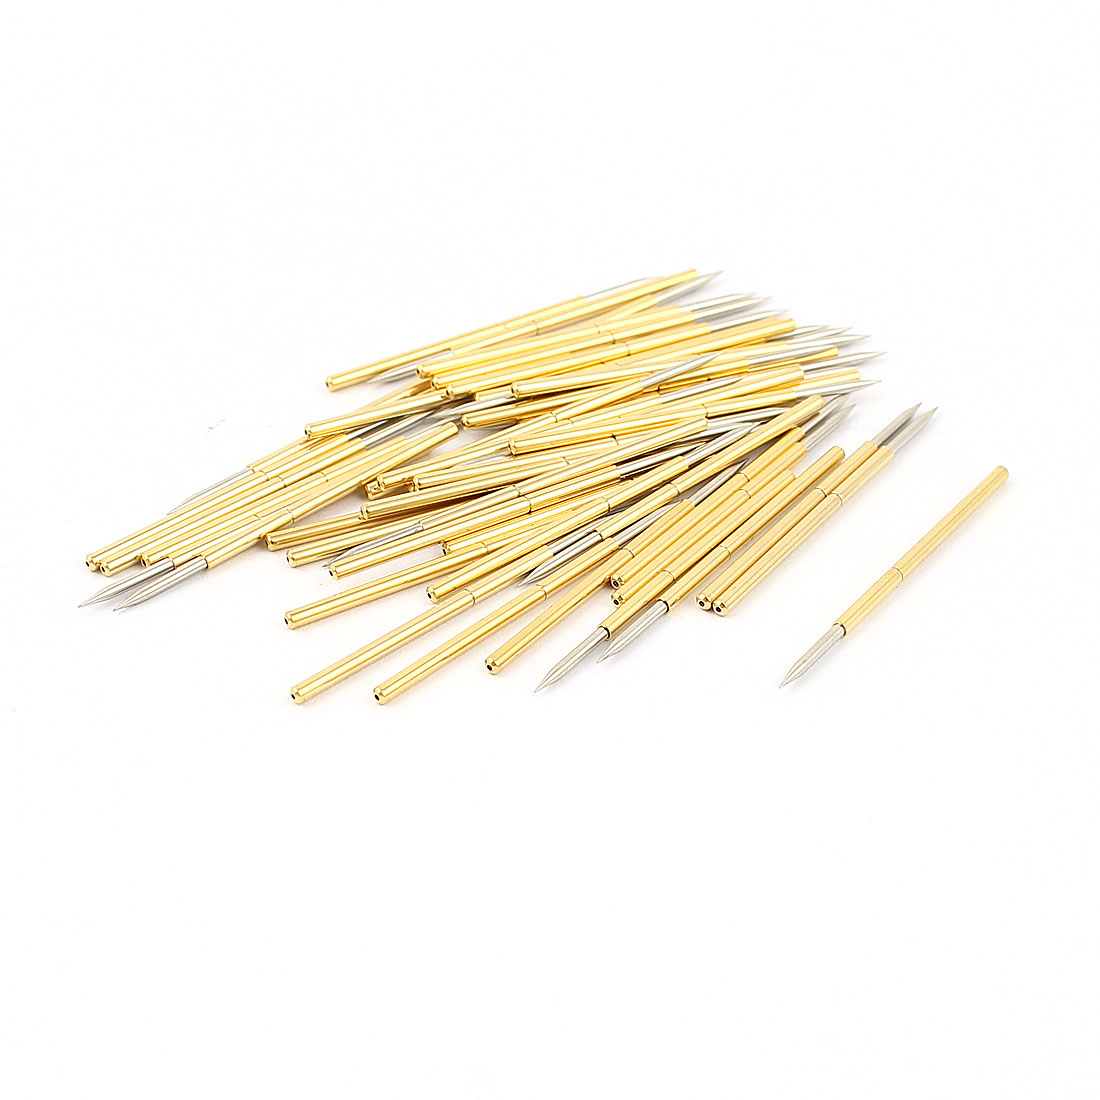 50 Pcs P100-B1 1.0mm Spear Tip Spring Testing Probes Pin 32.3mm Length